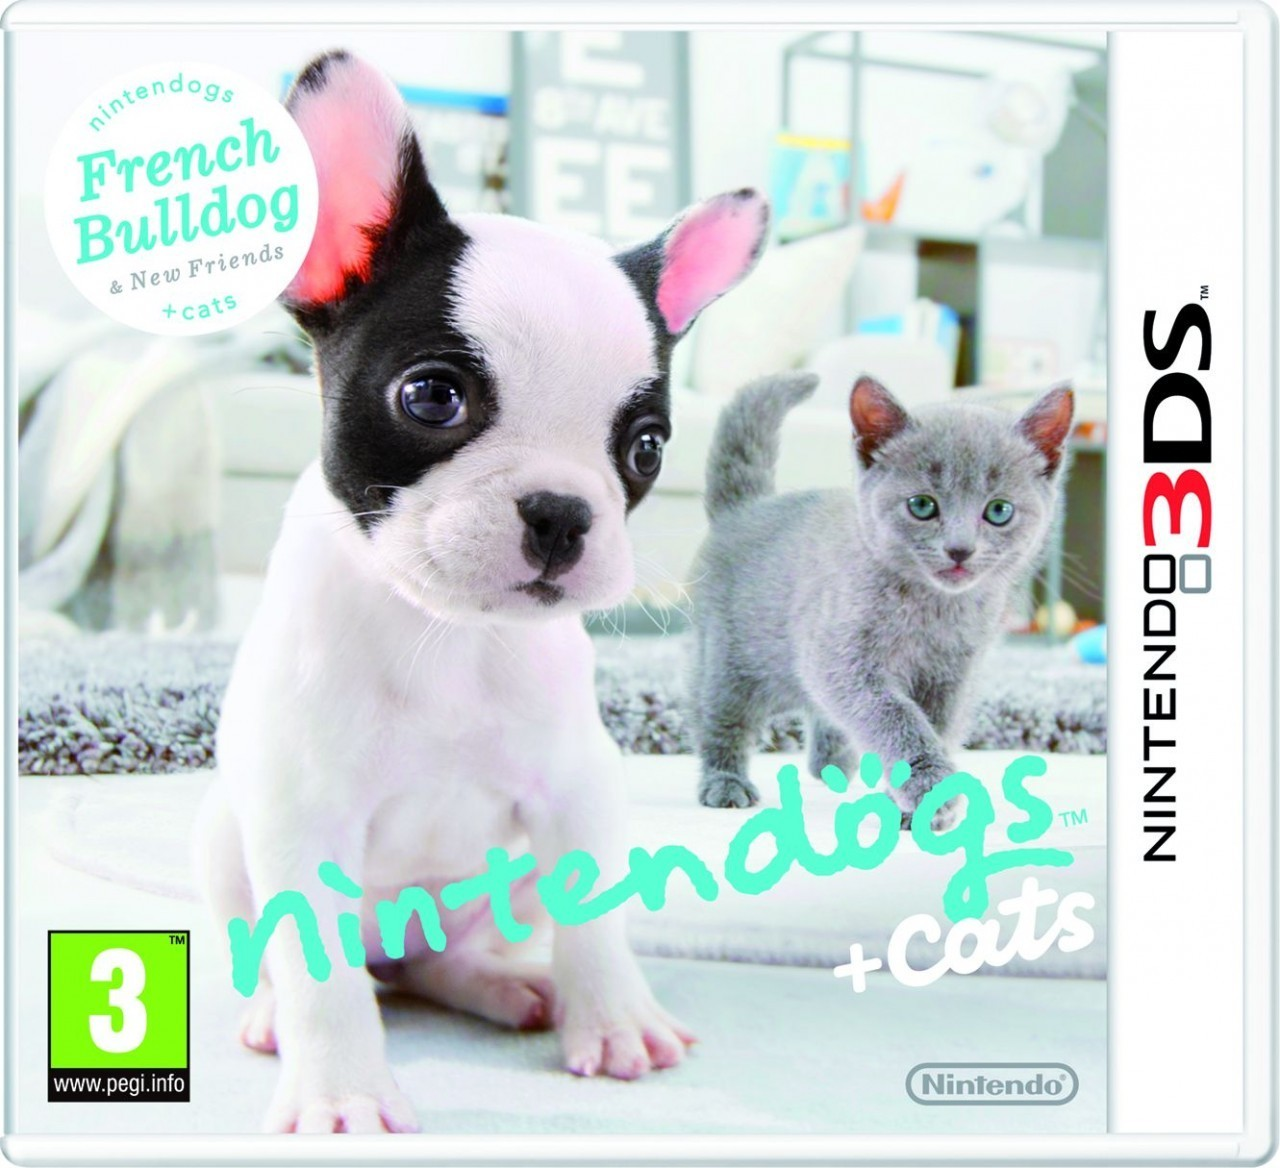 Nintendogs Cats Bouledogue